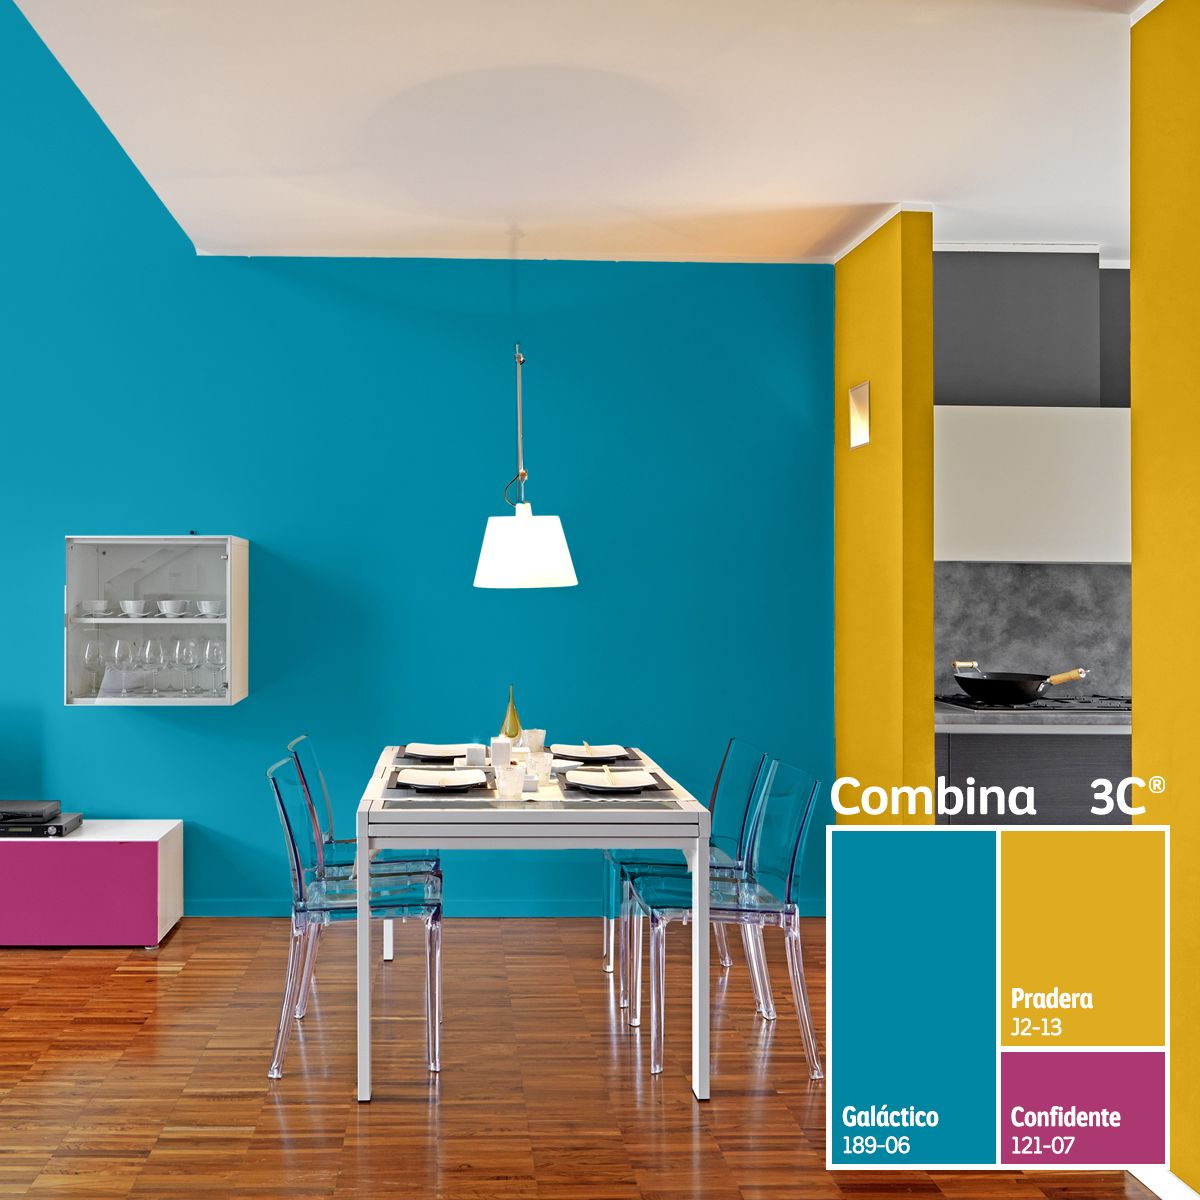 Combinaciones Audaces Para Espacios Creativos Colorlife Colores De Interiores Decoracion De Interiores Pintura Colores De Casas Interiores